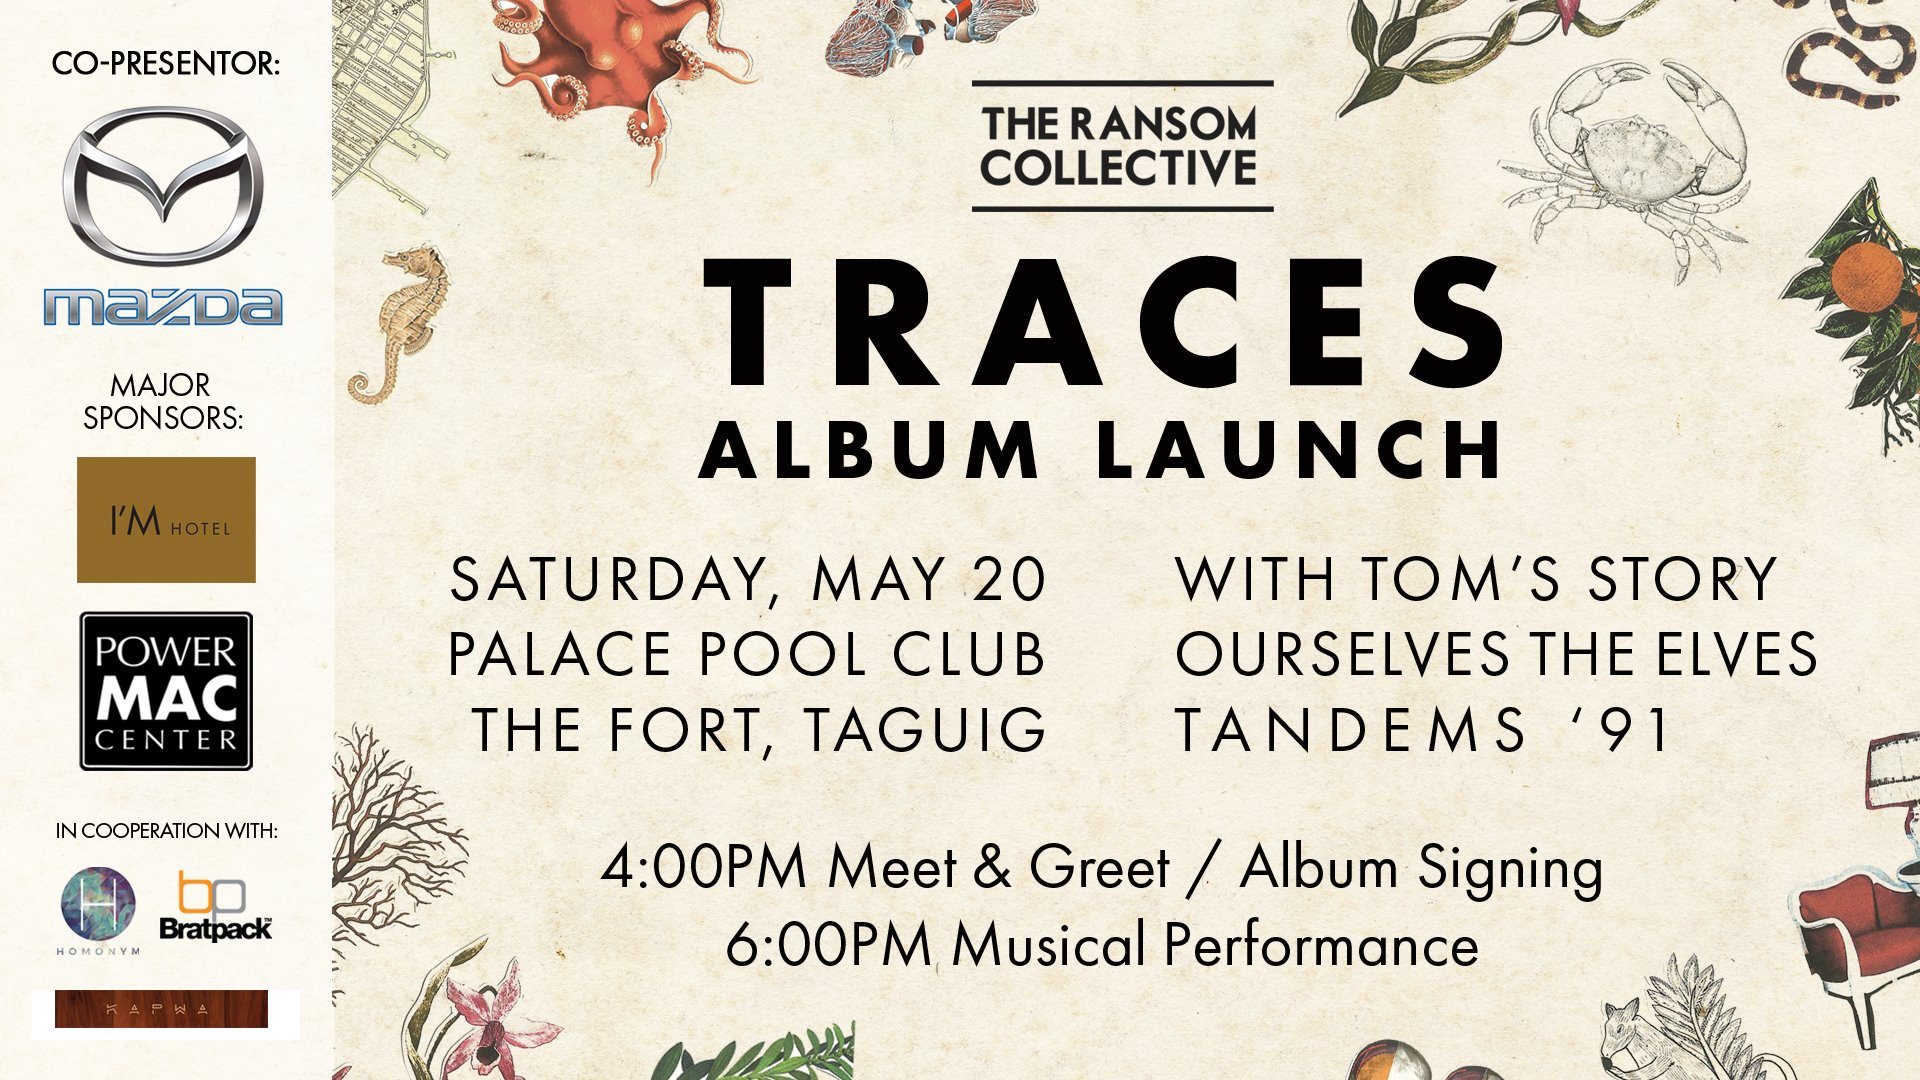 The Ransom Collective: Traces Album Launch